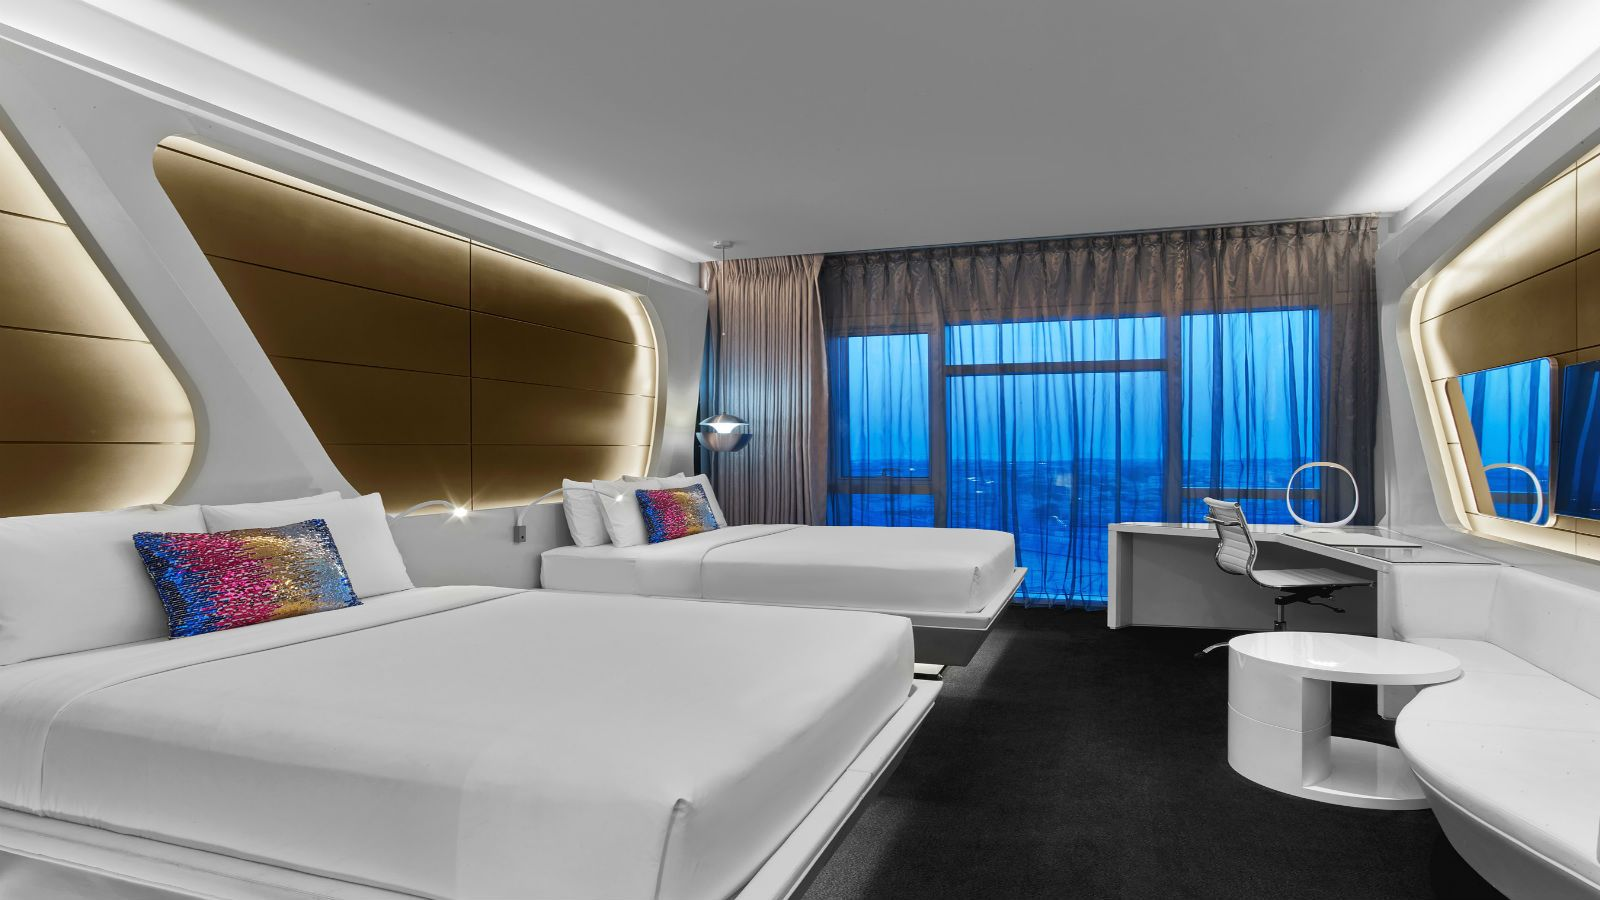 Marvelous Hotel Bedroom Room Design